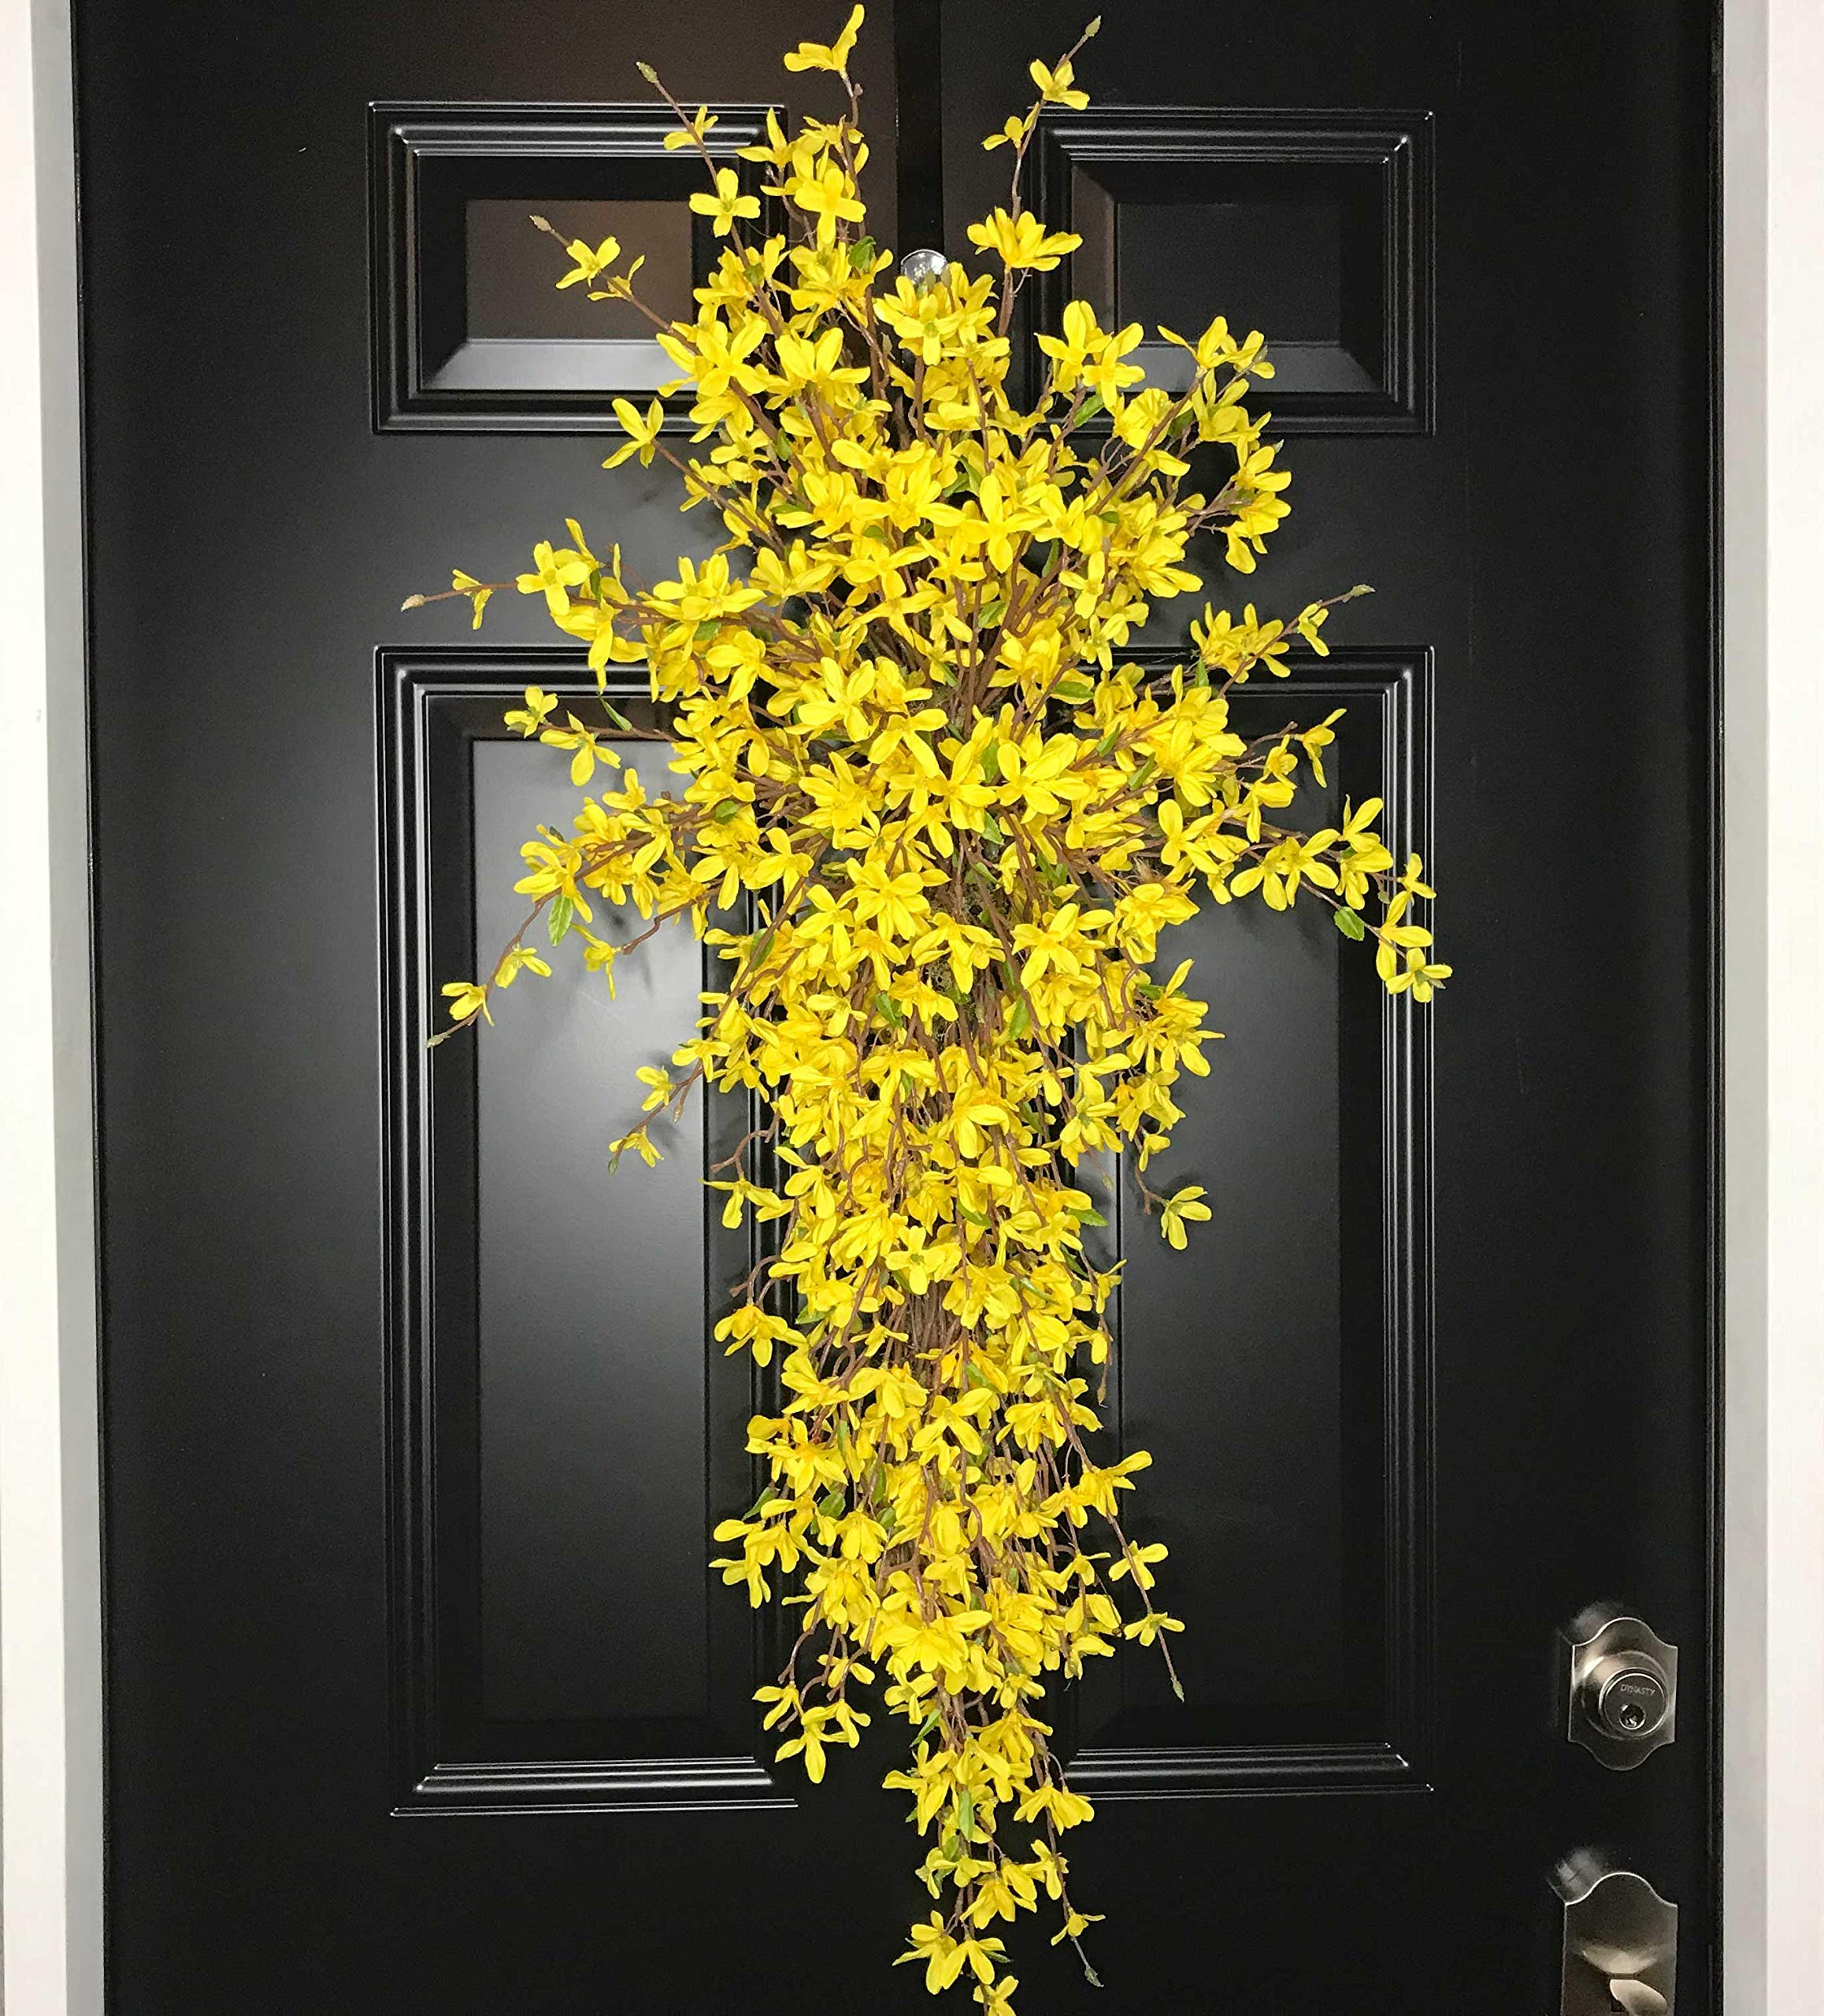 Extra Large Forsythia Floral Teardrop Swag Wreath for Front Door Porch Indoor Wall Farmhouse Decor Spring Springtime Summer Summertime Mother's Day Easter, Handmade, Yellow, 3 Sizes-42'', 36'', 30'' L by Wreath and Vine, LLC (Image #8)